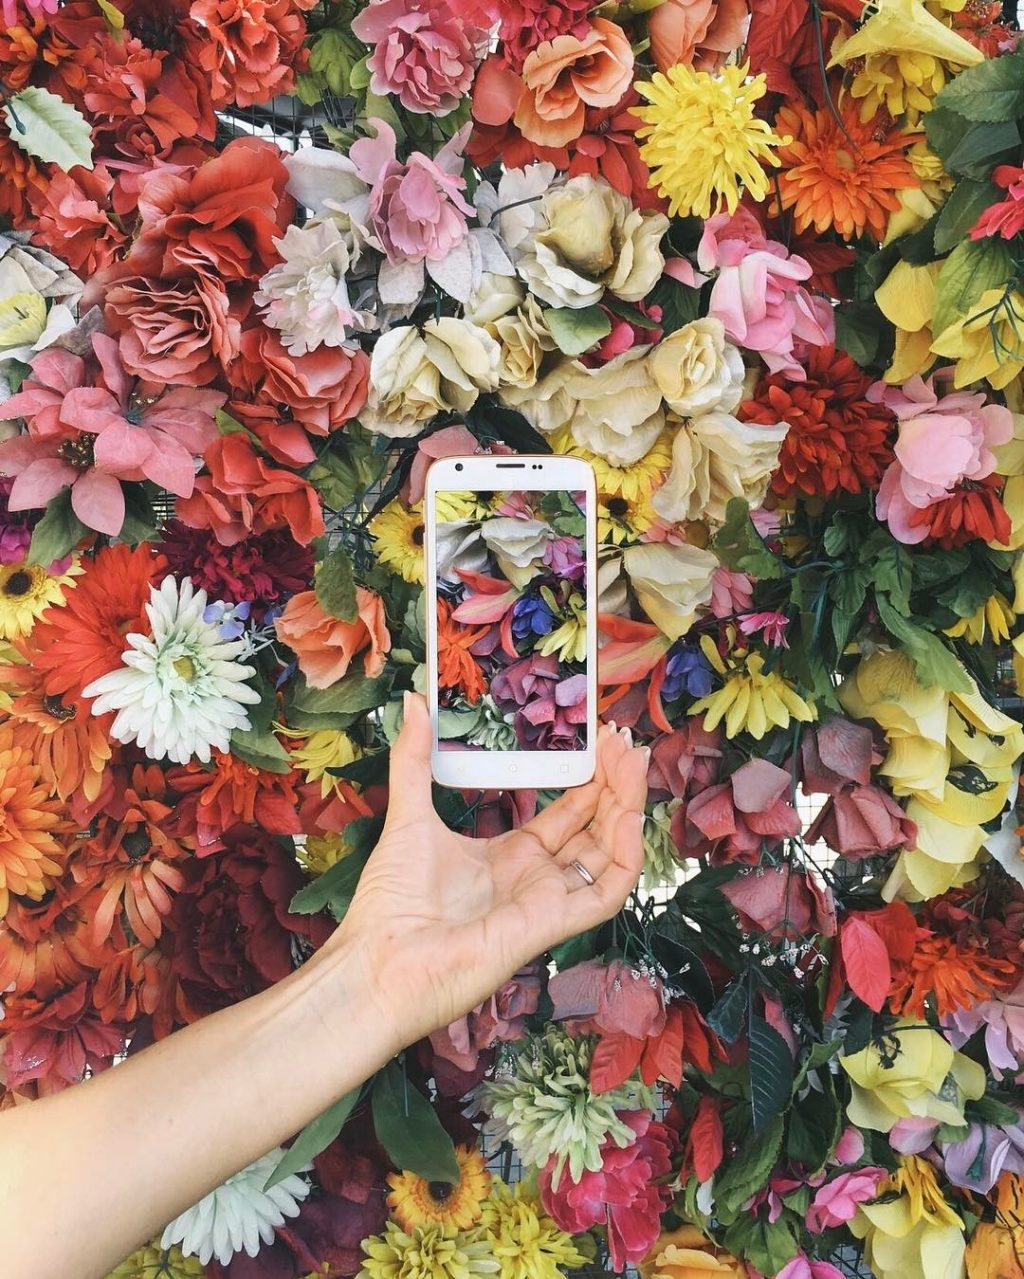 multi colored flowers hand holding cell phone